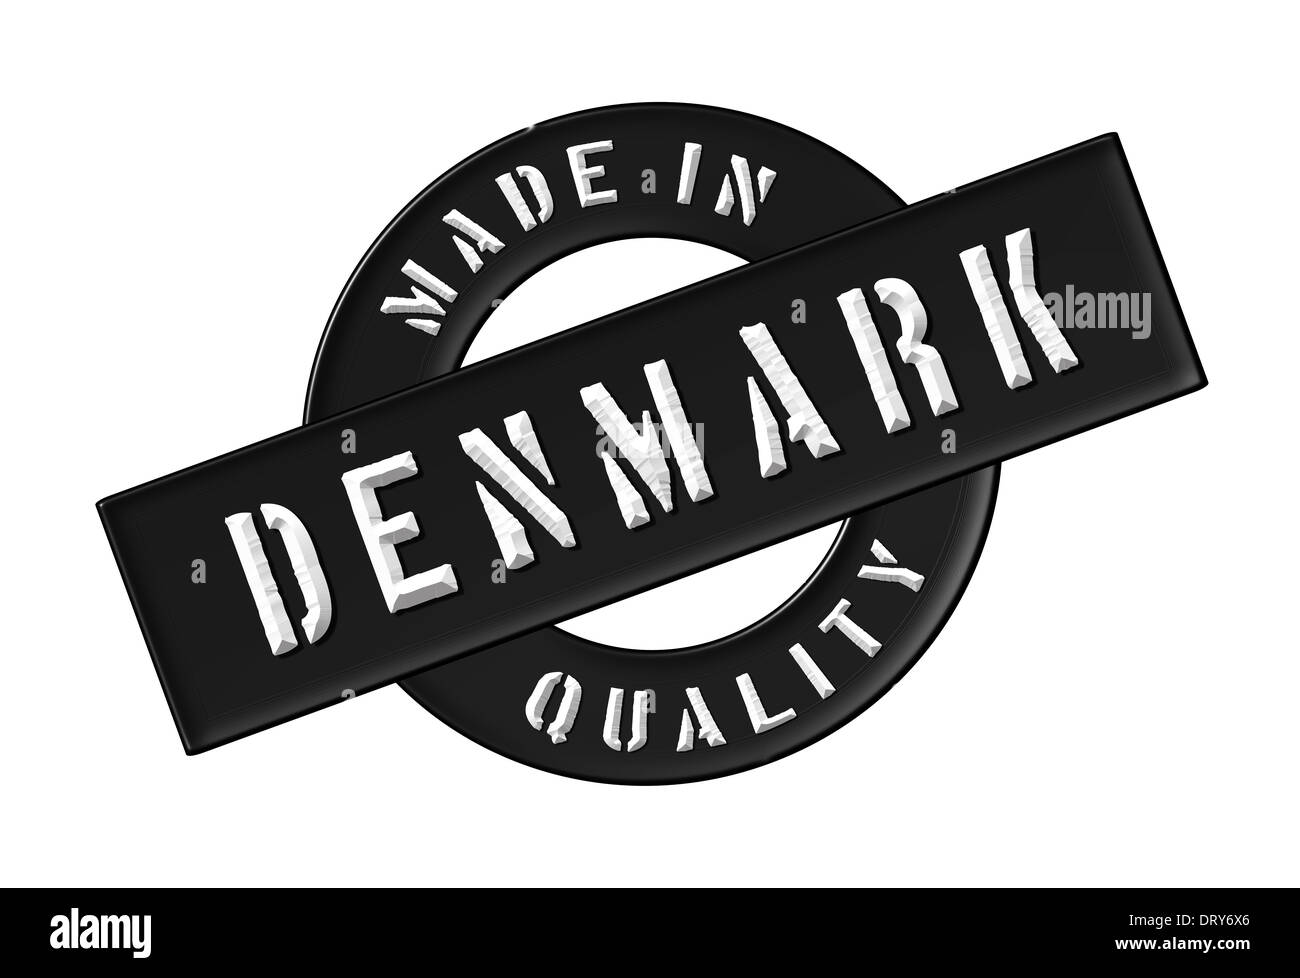 ade in Denmark - Stock Image